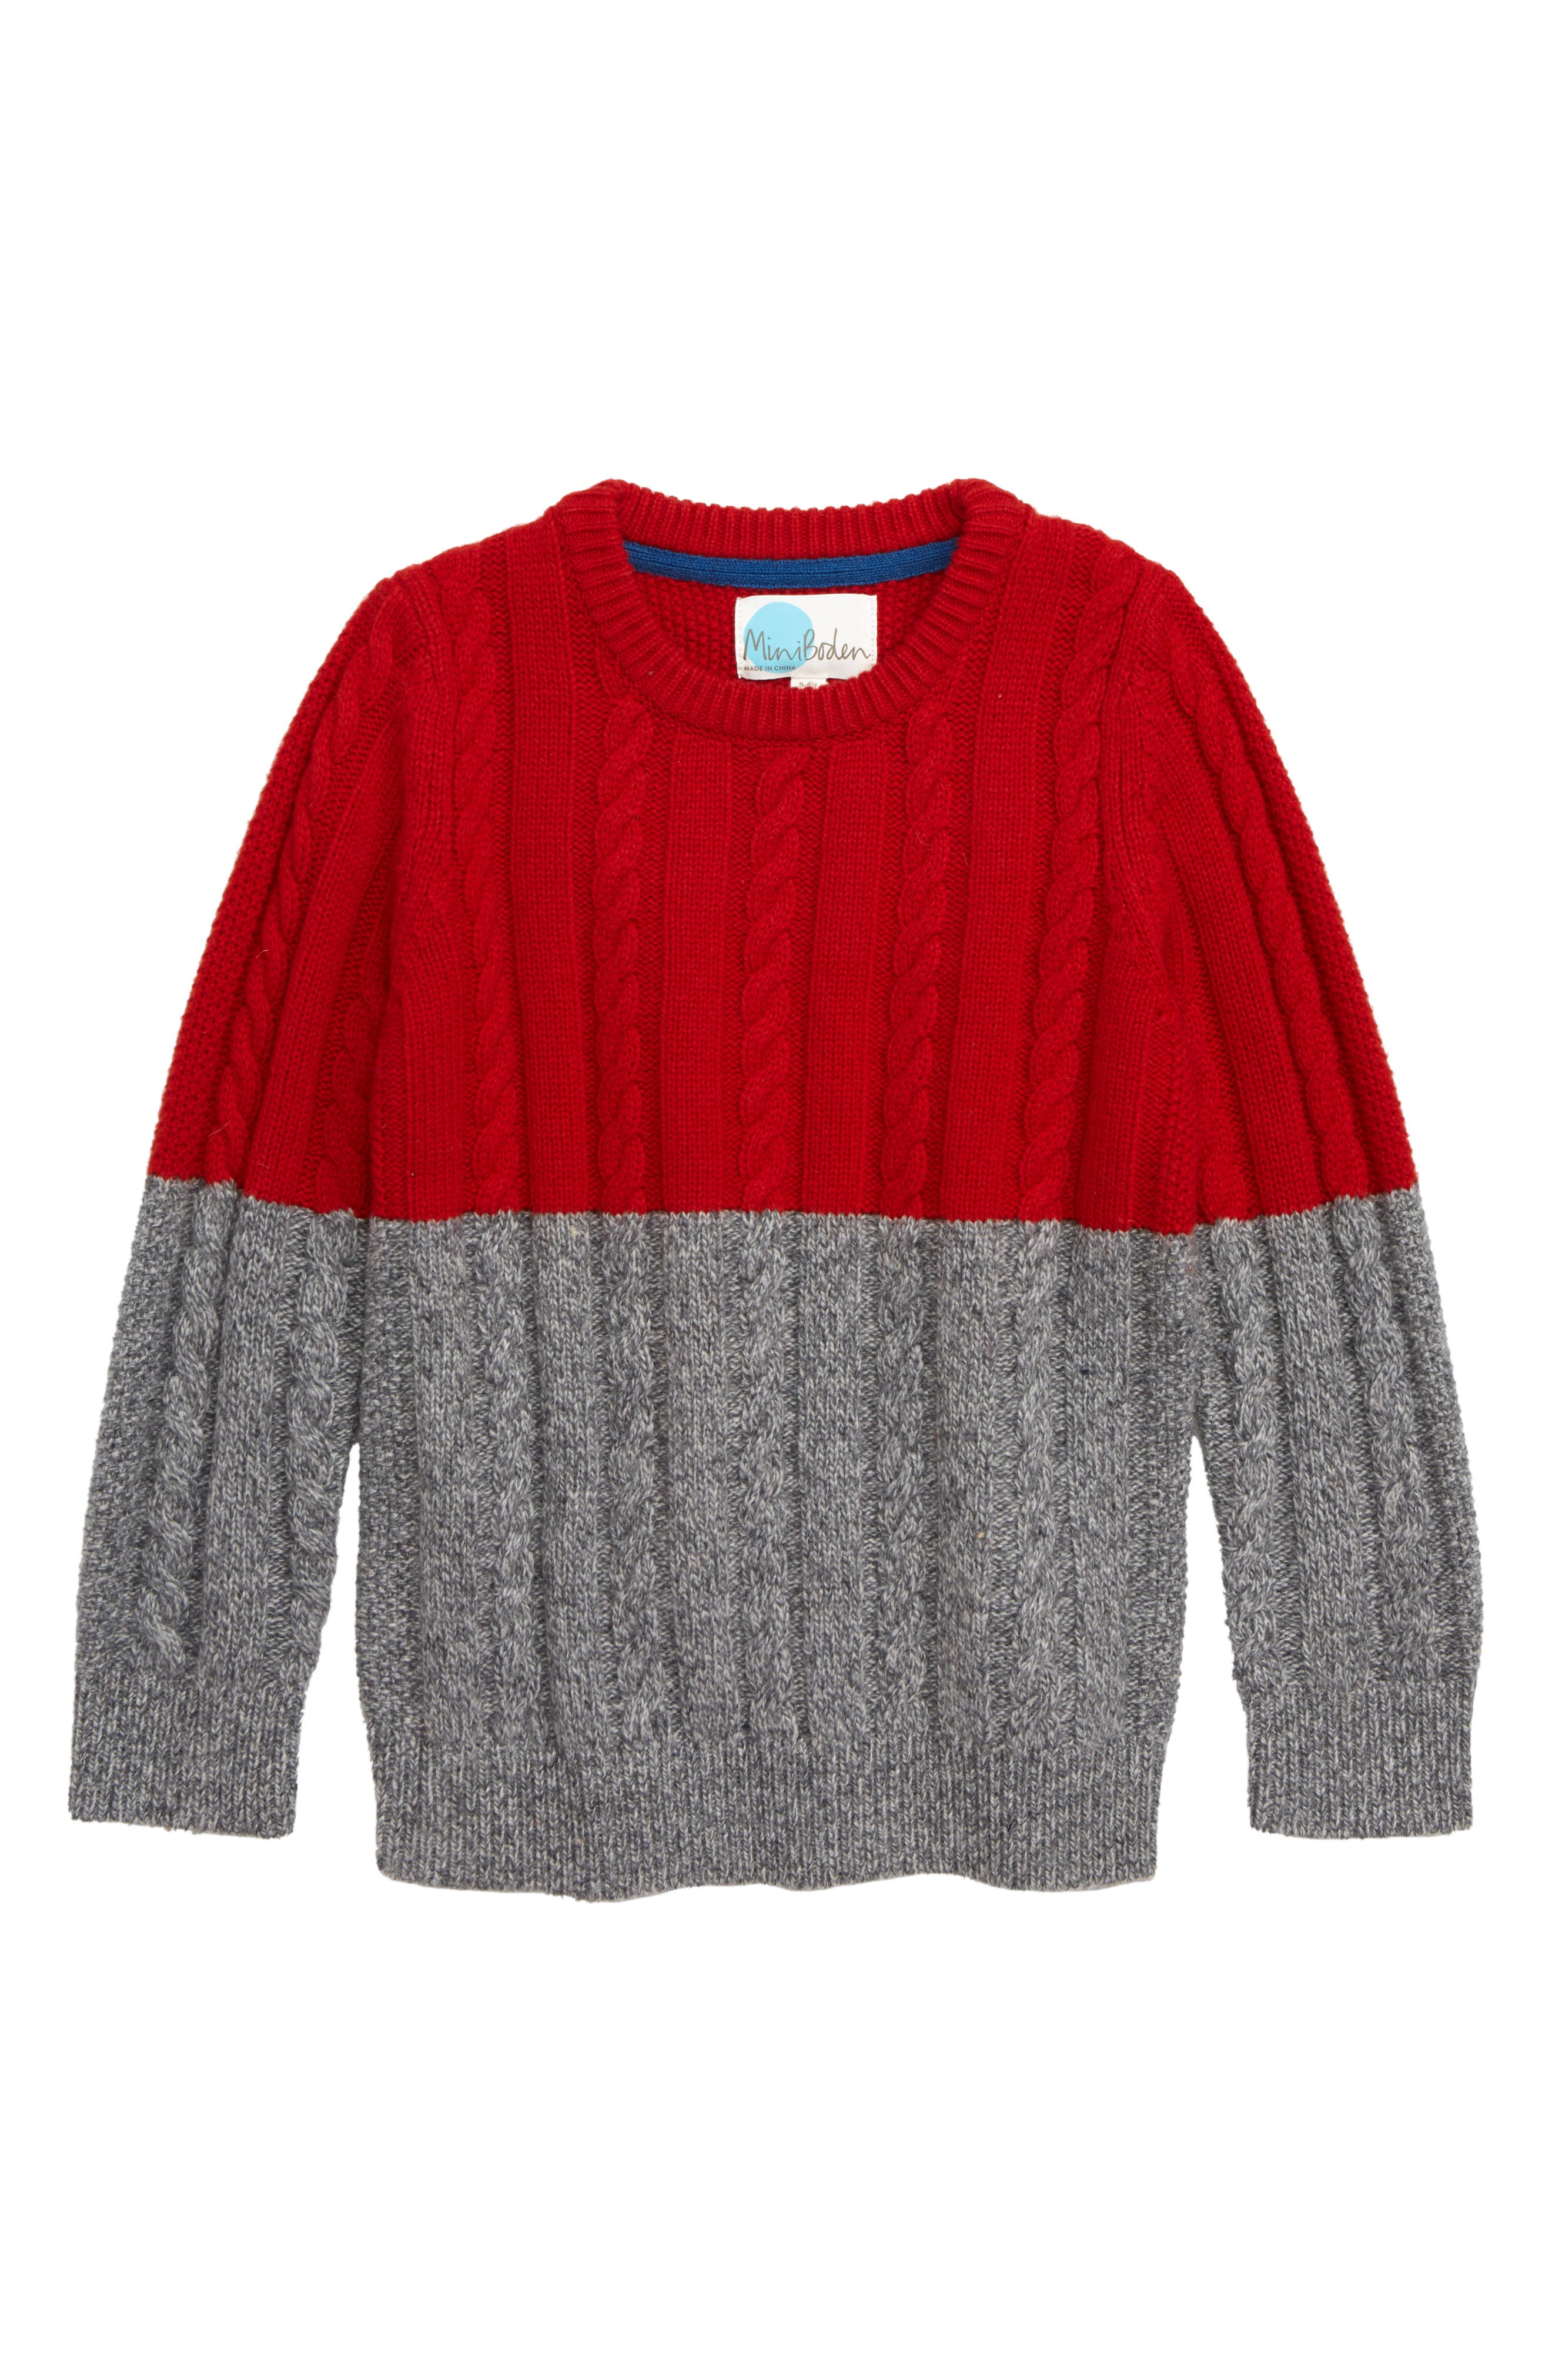 Boys Mini Boden Colorblock Cable Knit Sweater Size 910Y  Blue